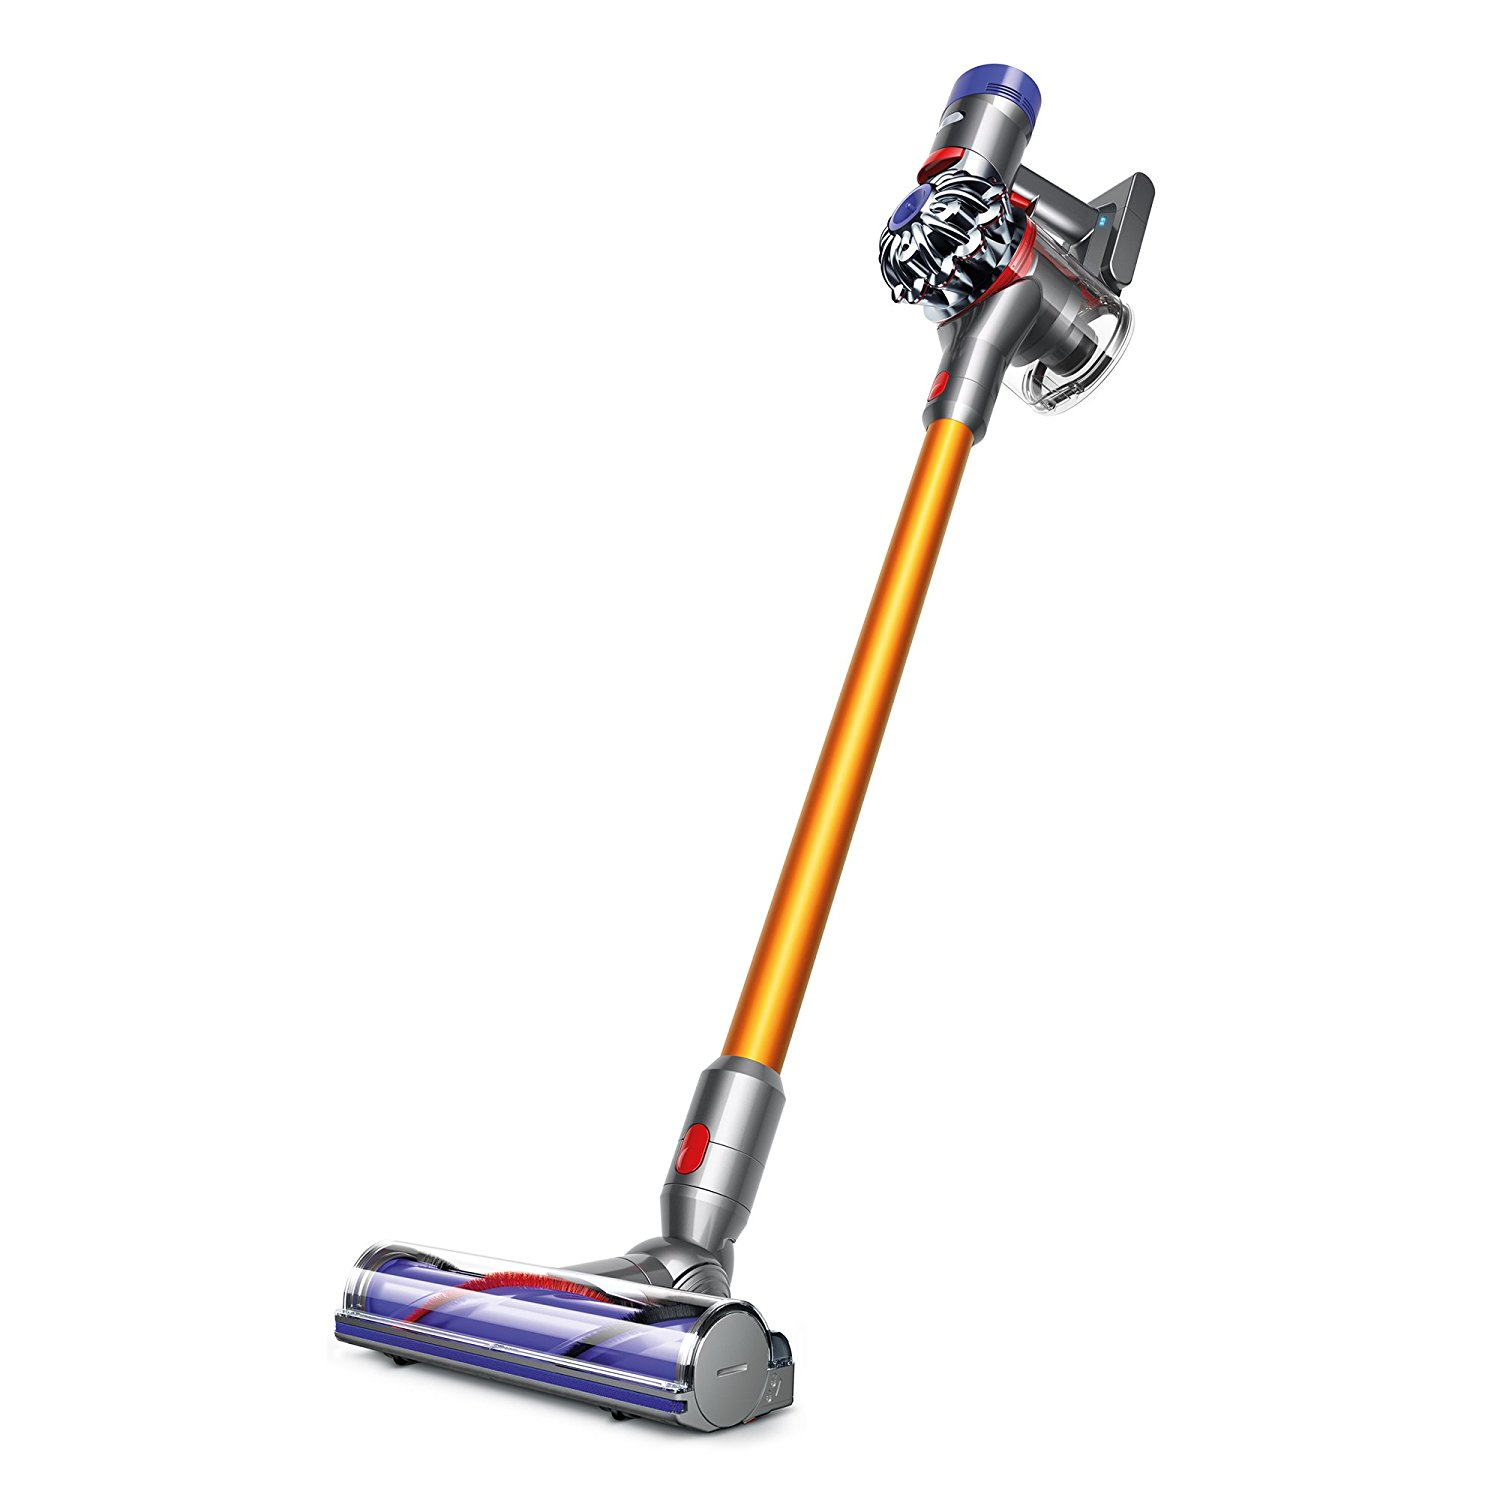 Image of Dyson V8 Absolute Cord-free Vacuum Cleaner